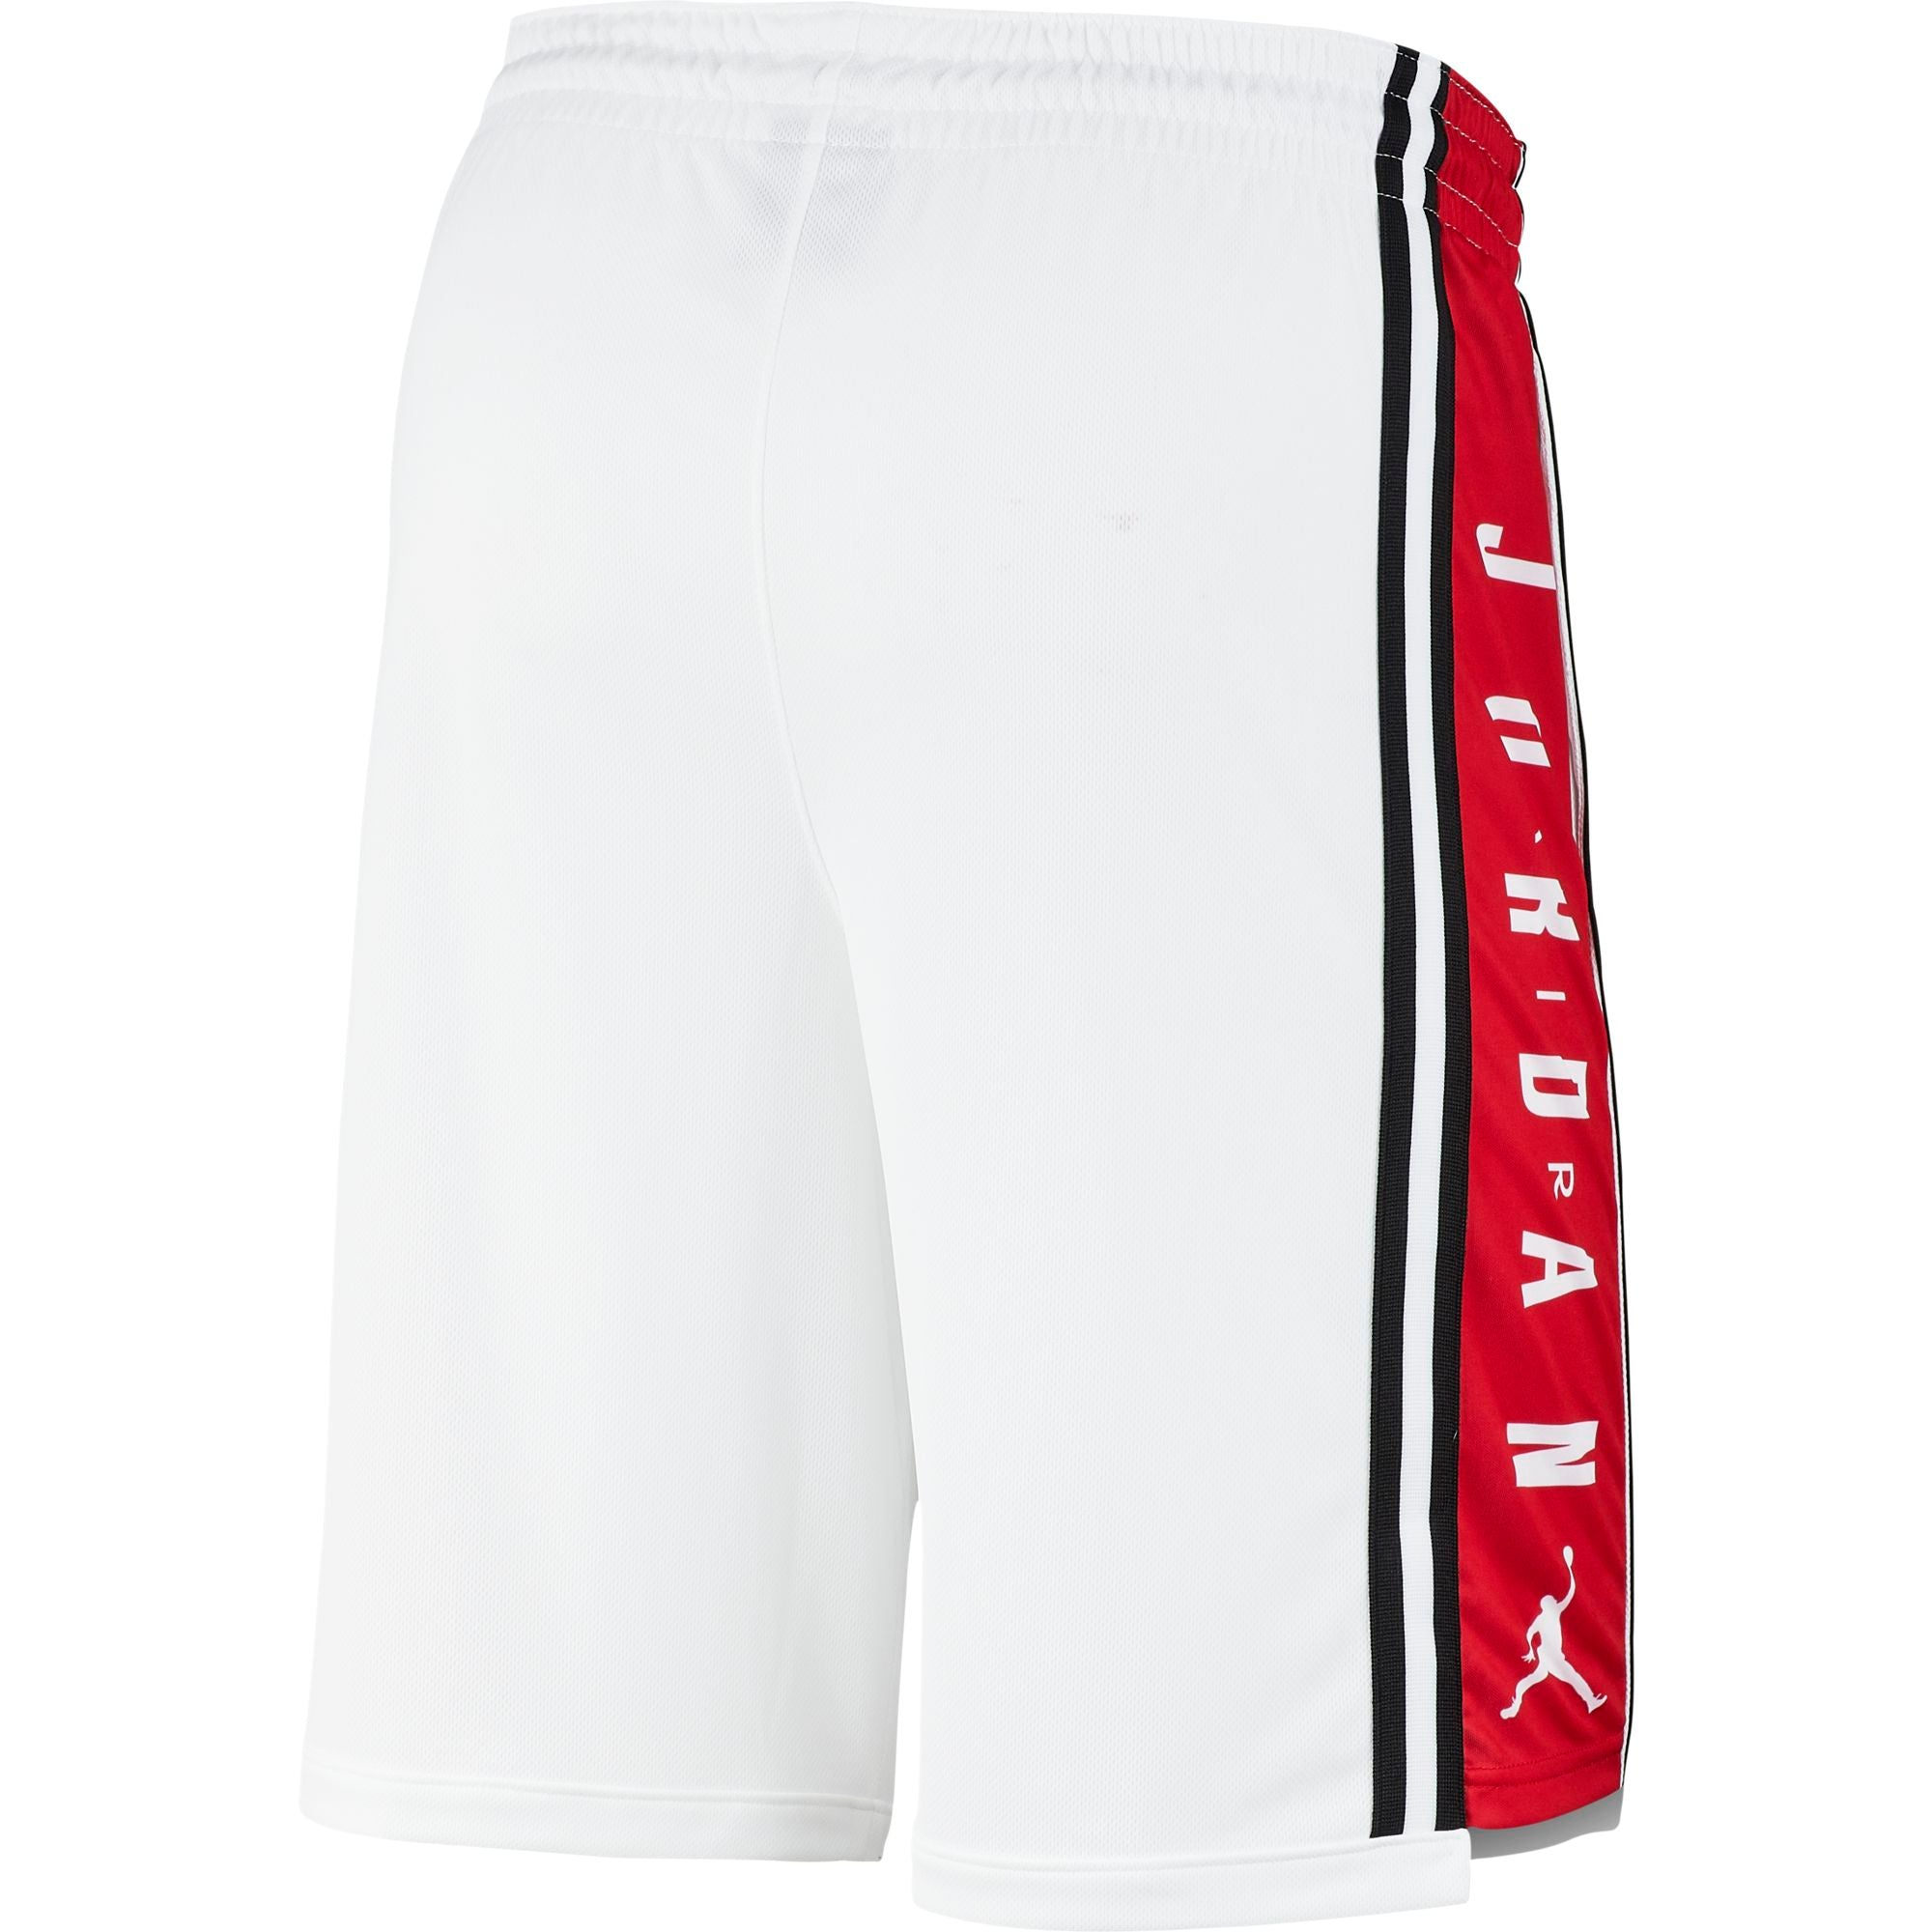 Nike Jordan HBR Basketball Shorts - White/Gym Red/Black